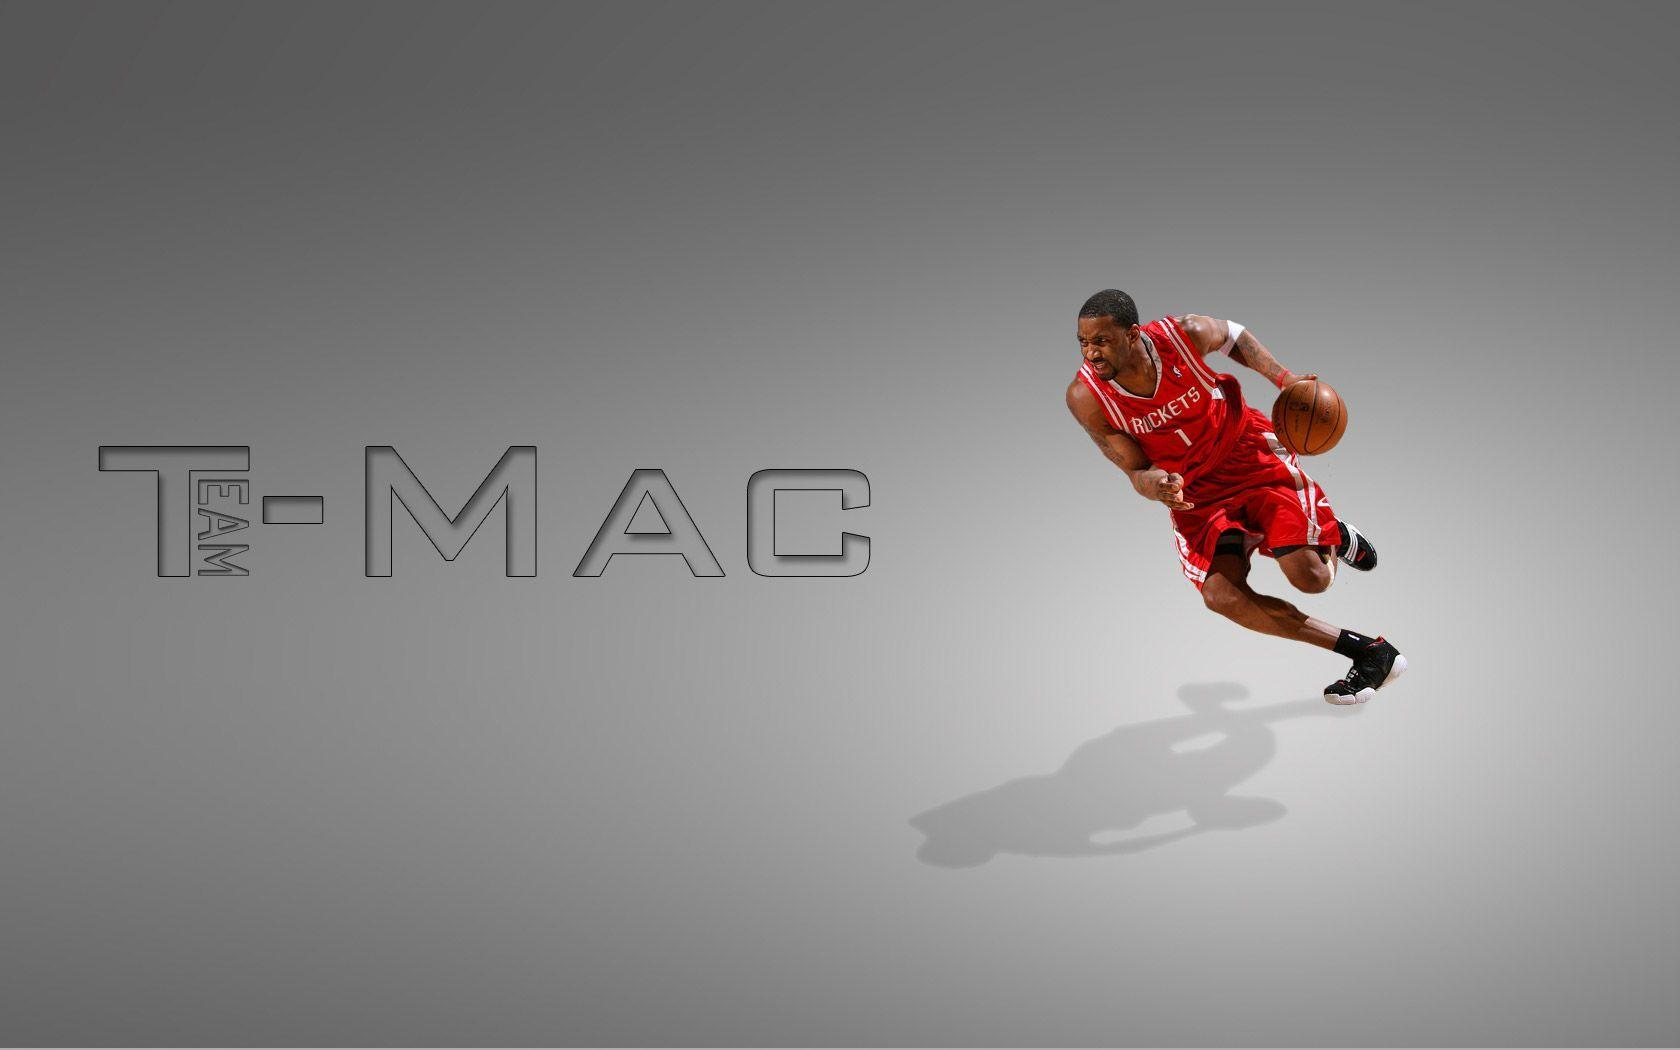 tracy mcgrady wallpaper desktop - photo #23